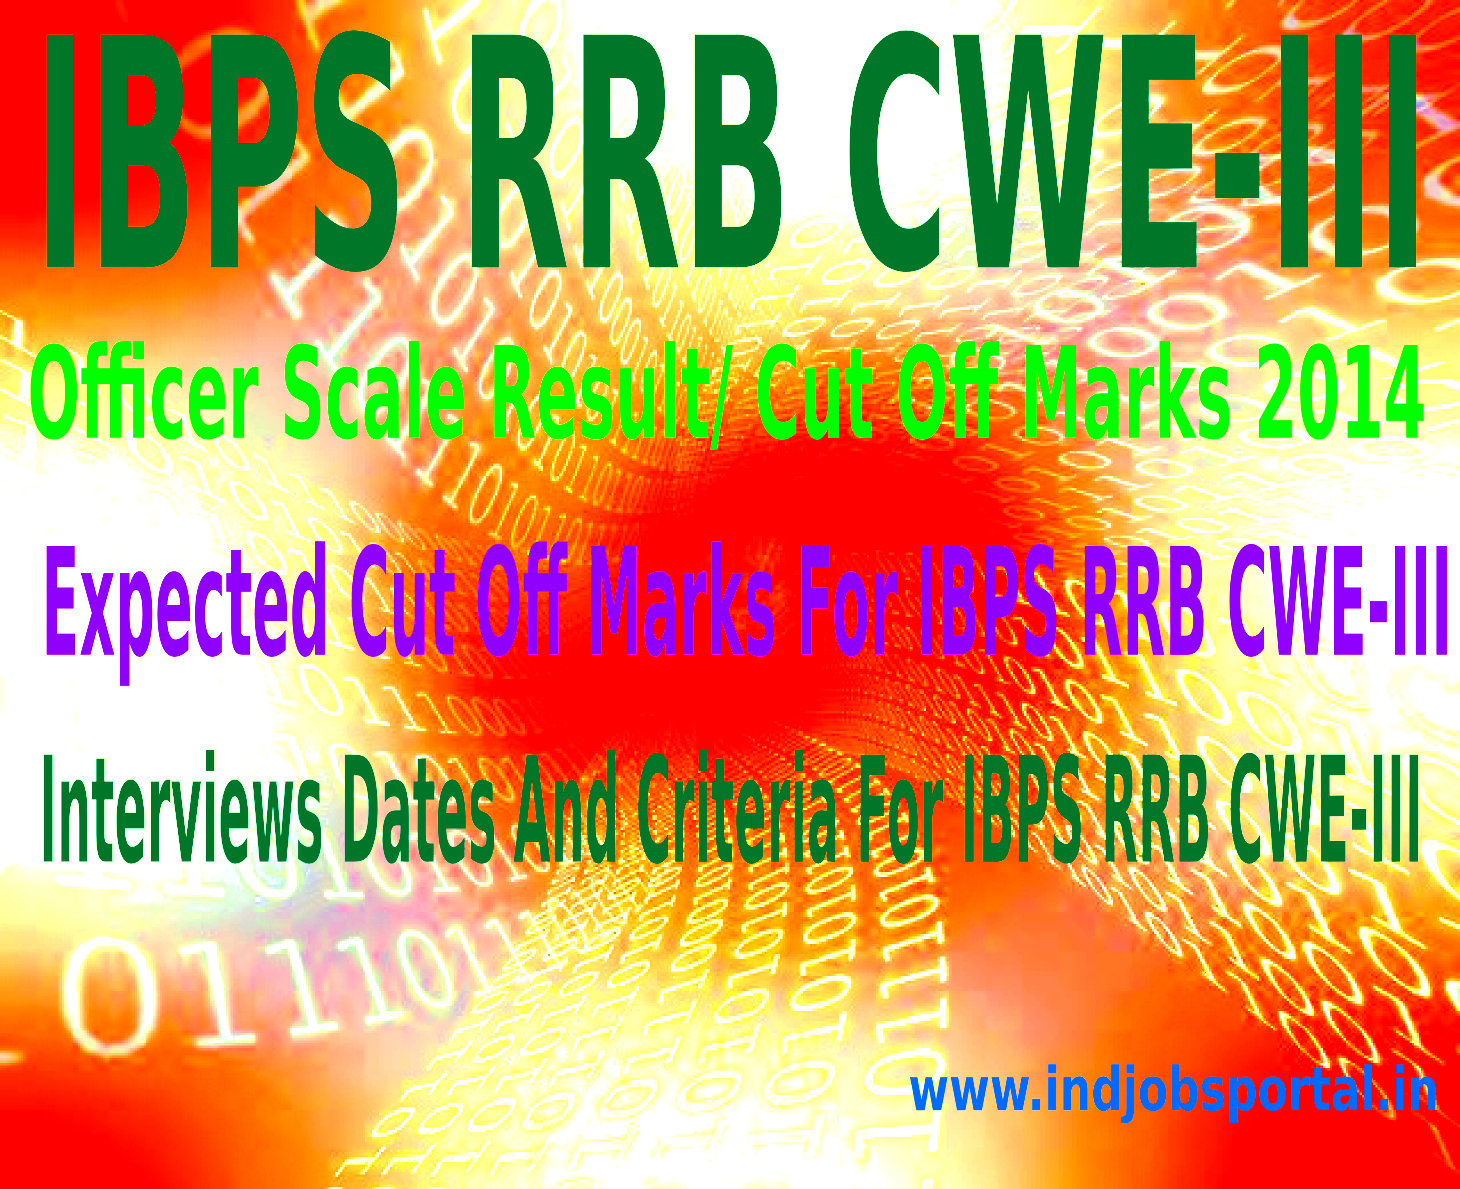 IBPS RRB CWE-III Officer Scale Result,Cut Off Marks 2014